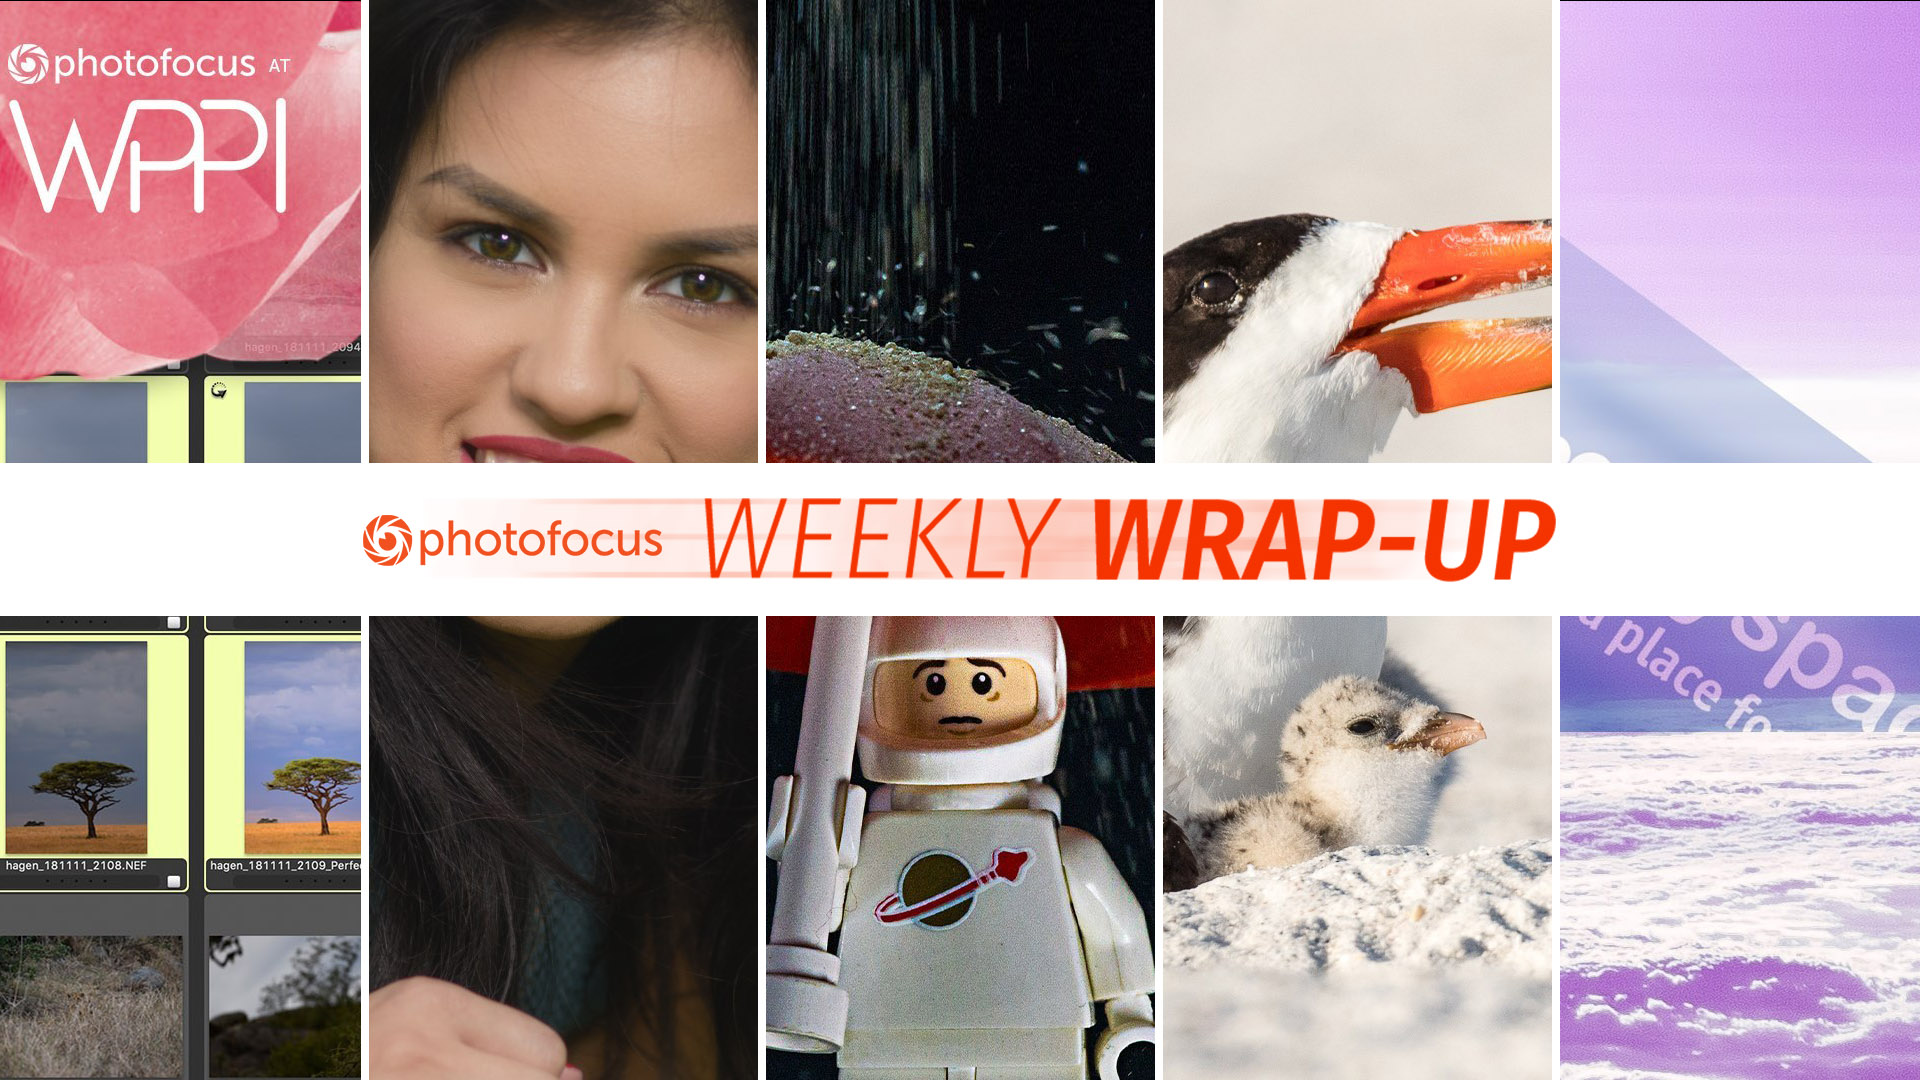 Photofocus Weekly Wrap Up photos for the week ending March 23, 2019